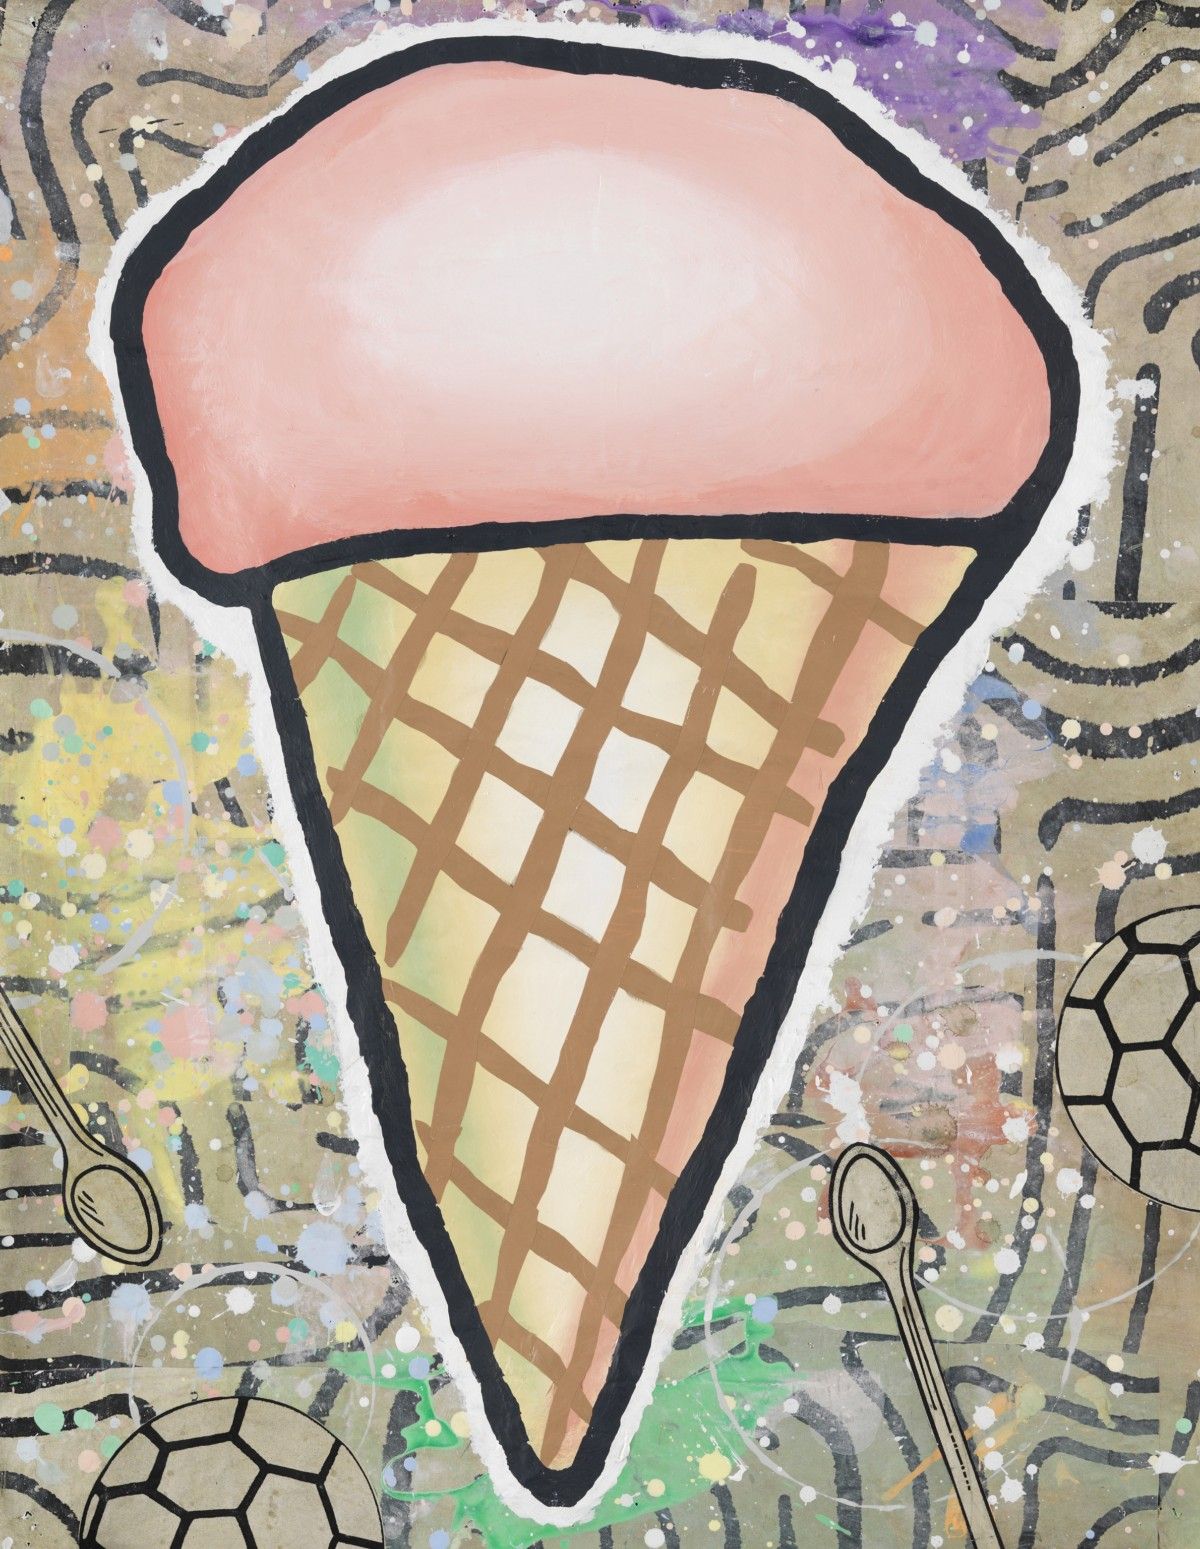 Donald Baechler, Cone, 2013, gesso, flashe e collage su carta